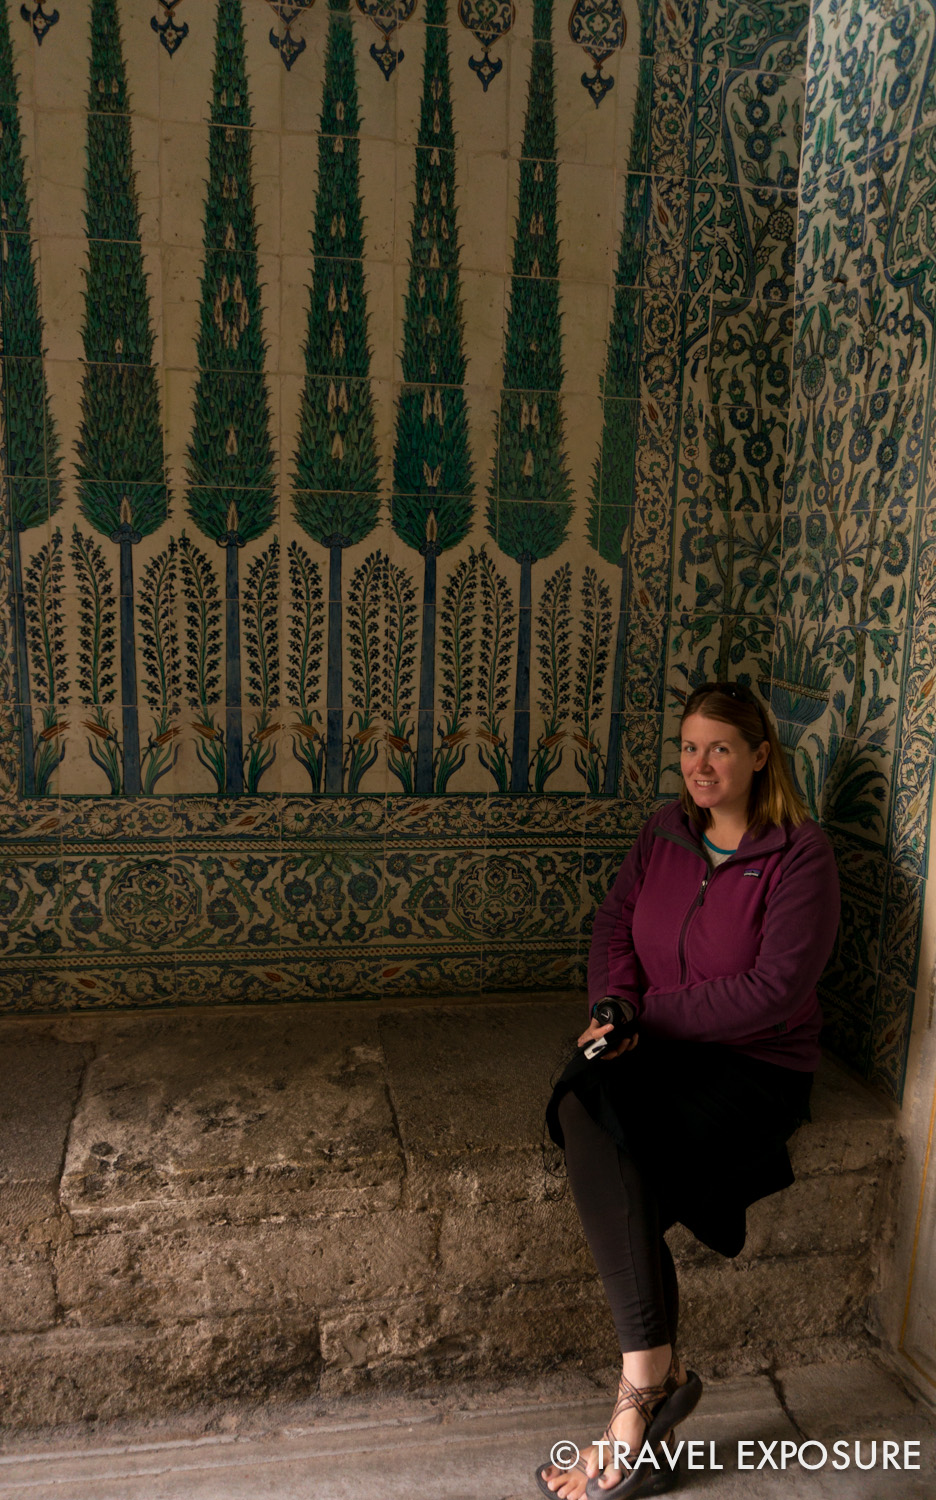 Ornate tile work at Topkapi Palace, Istanbul.